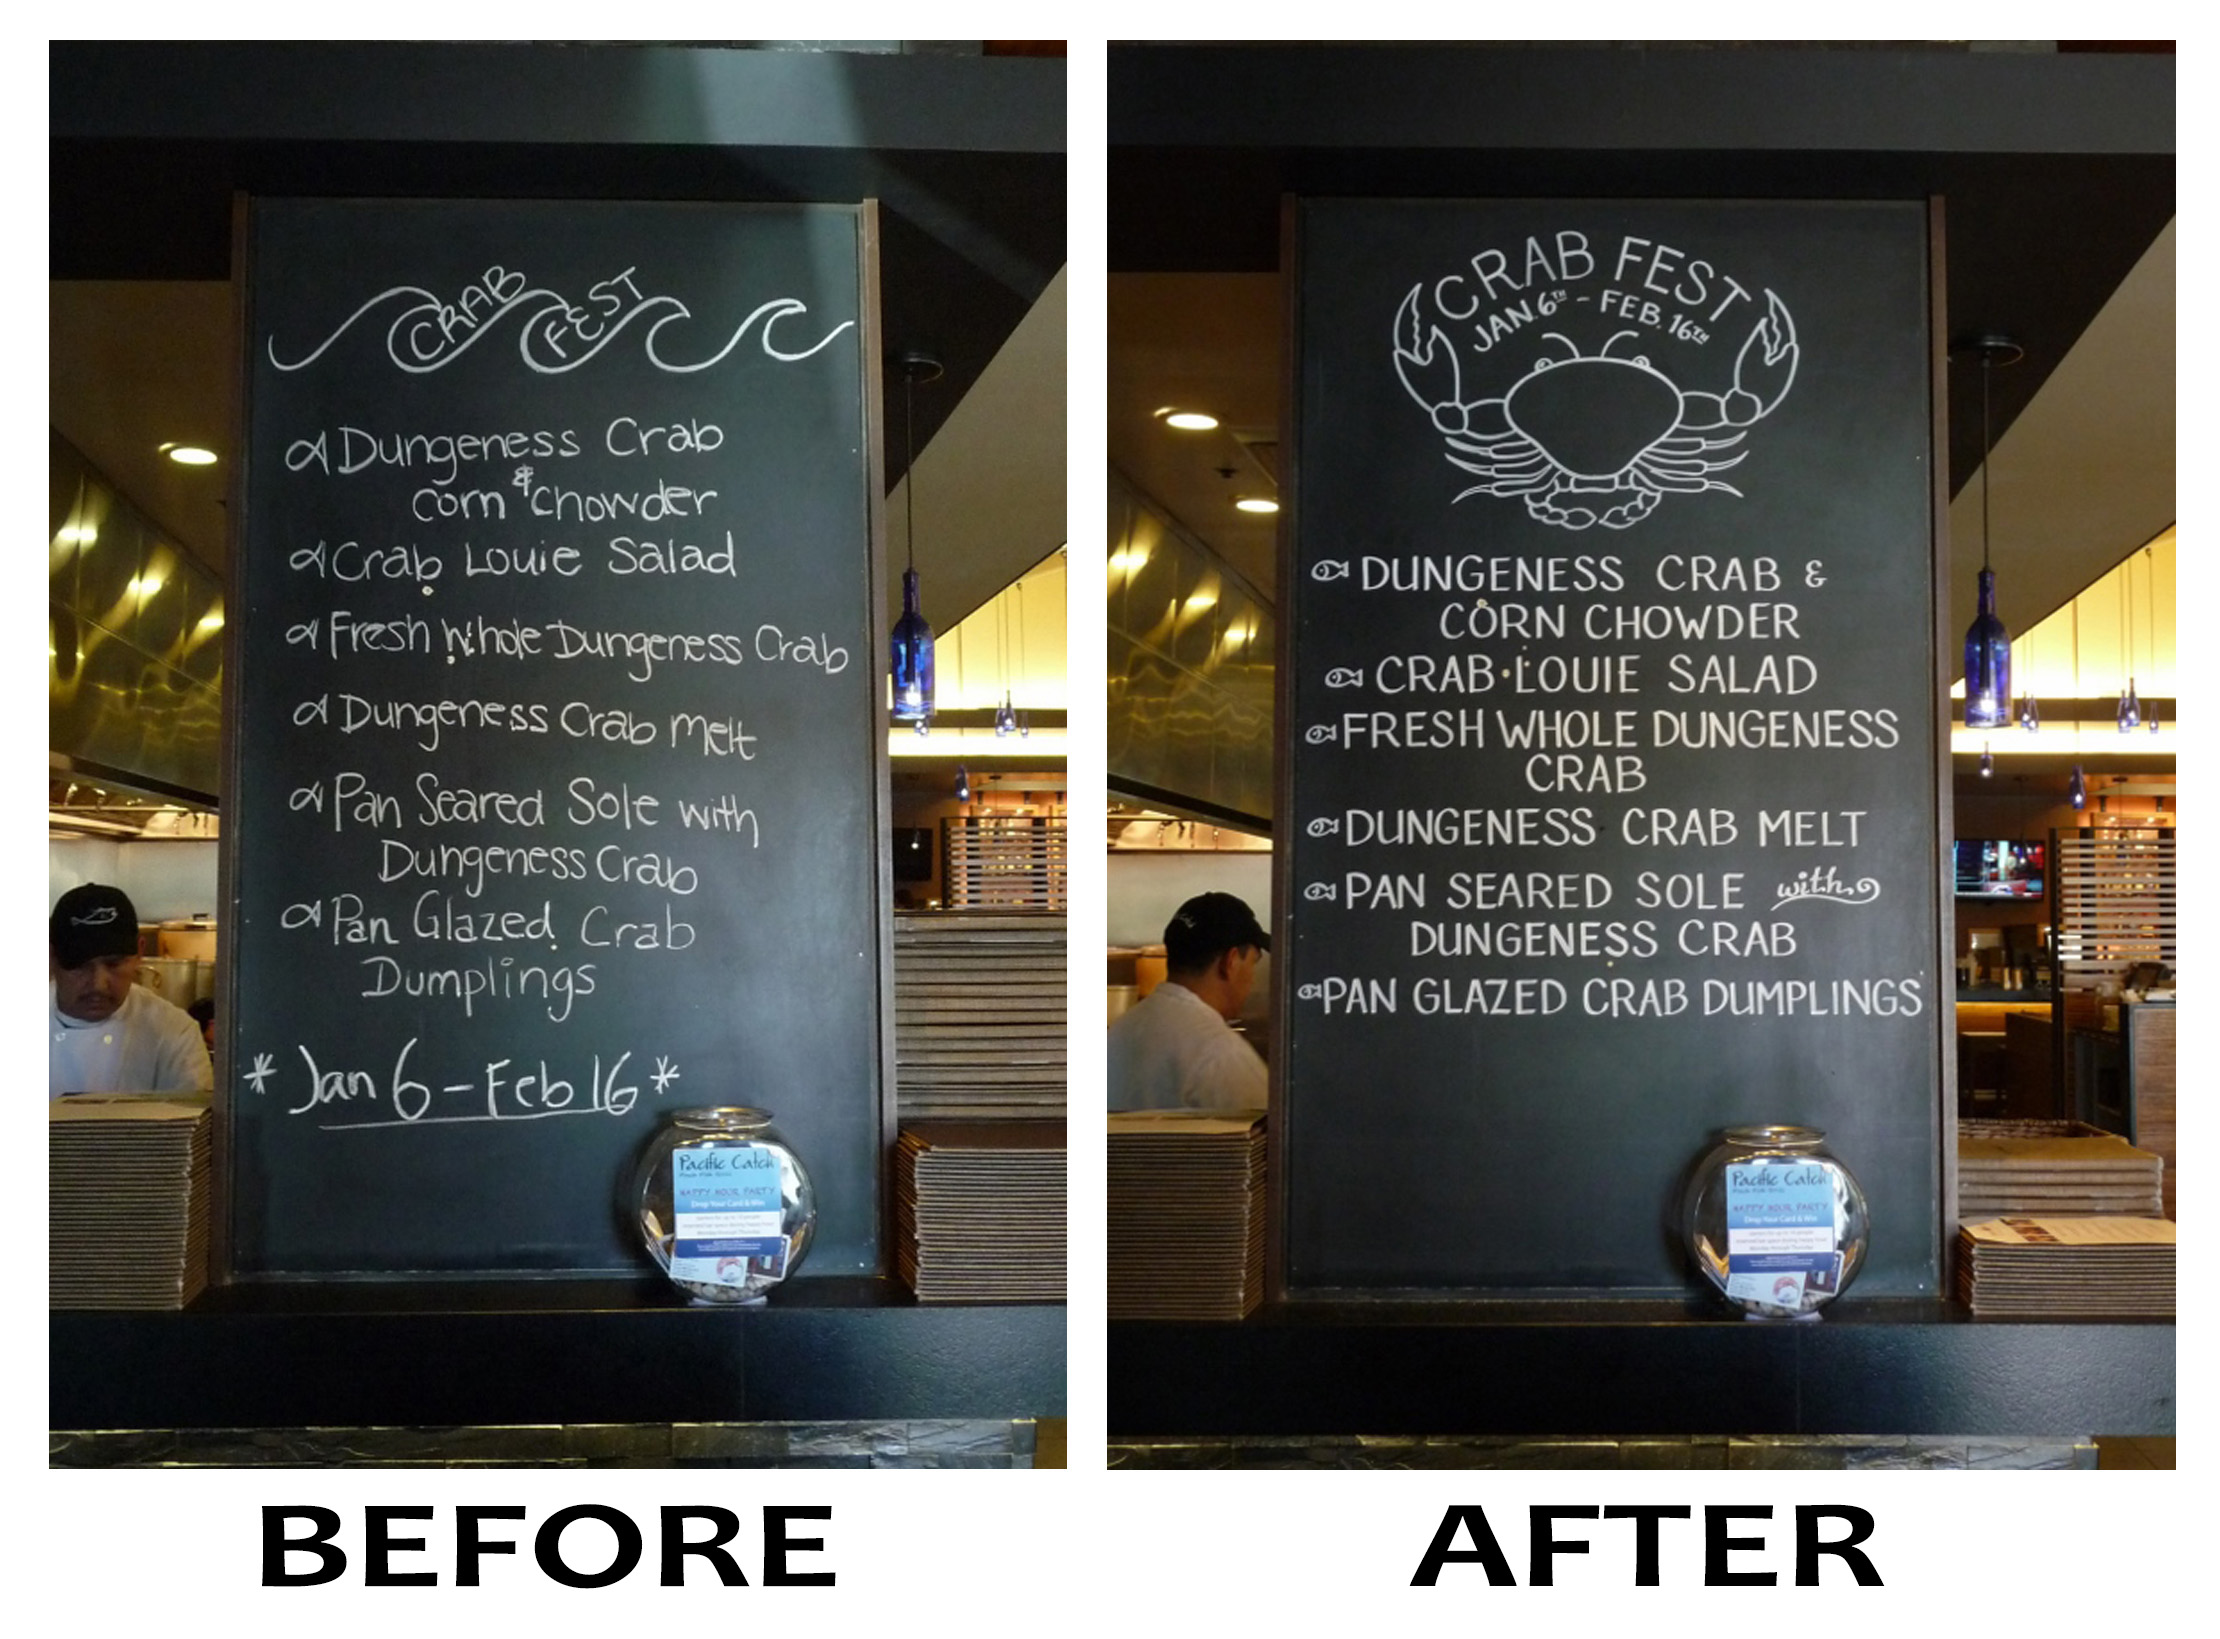 Before/After Crab Fest Main Board